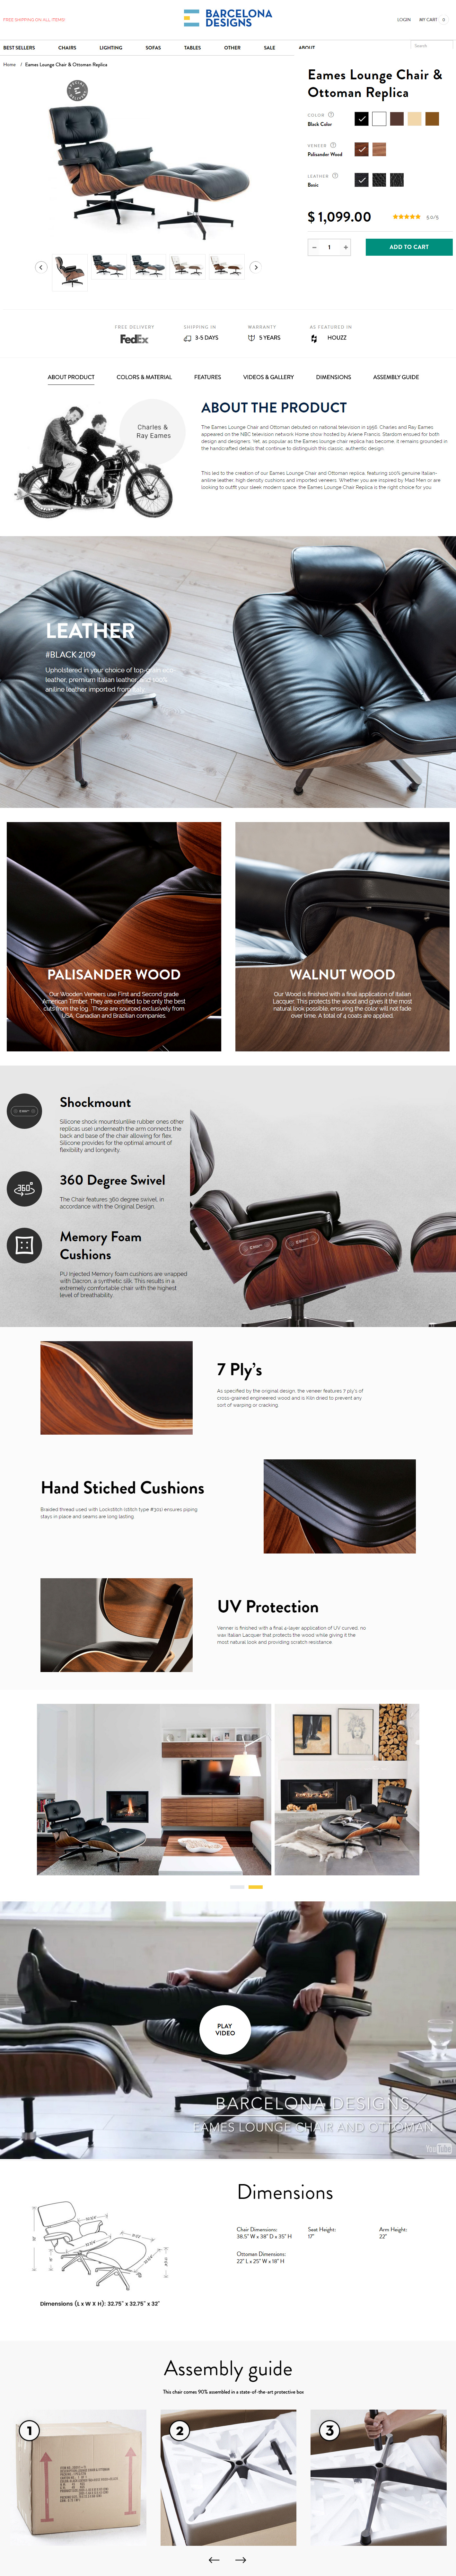 Vitra Lounge Chair Replica barcelona designs – the foremost us-canadian supplier of the